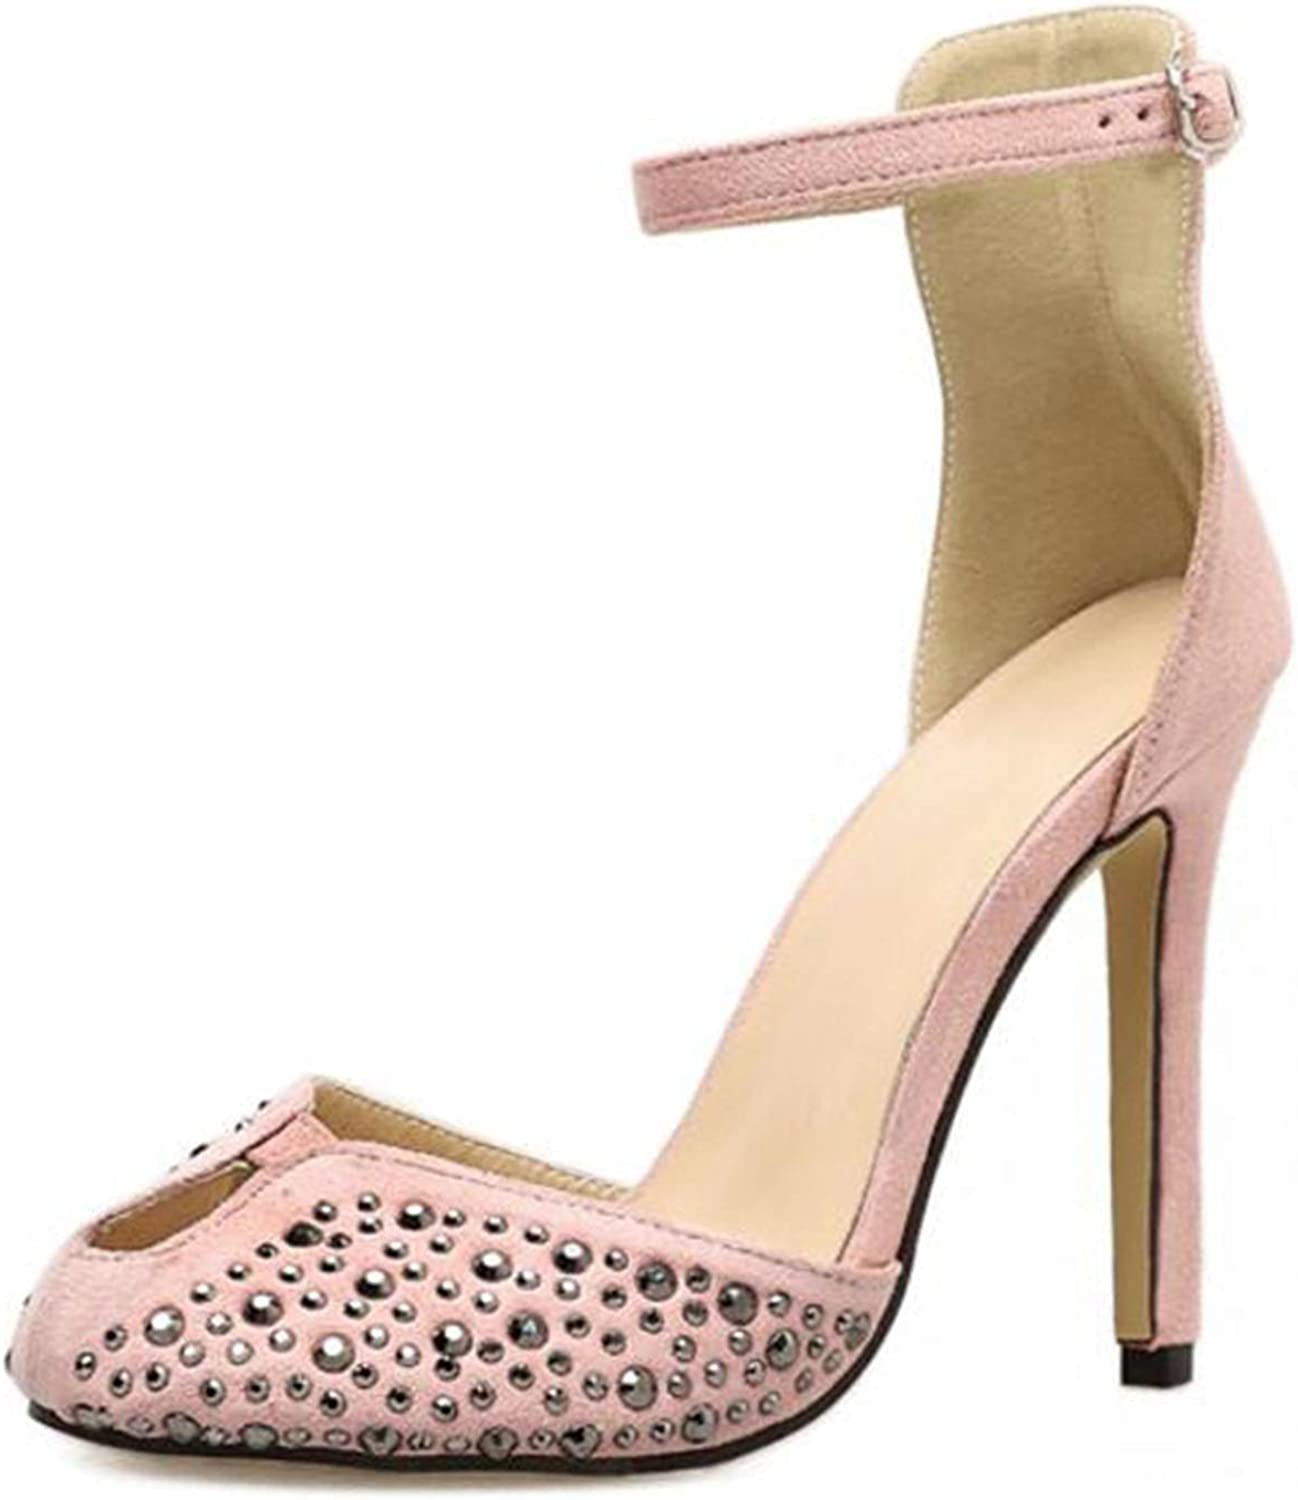 pink flowers 2018 Summer Sexy Fashion Women High Heels shoes Pumps Crystal Ankle Strap Open Toe Party shoes